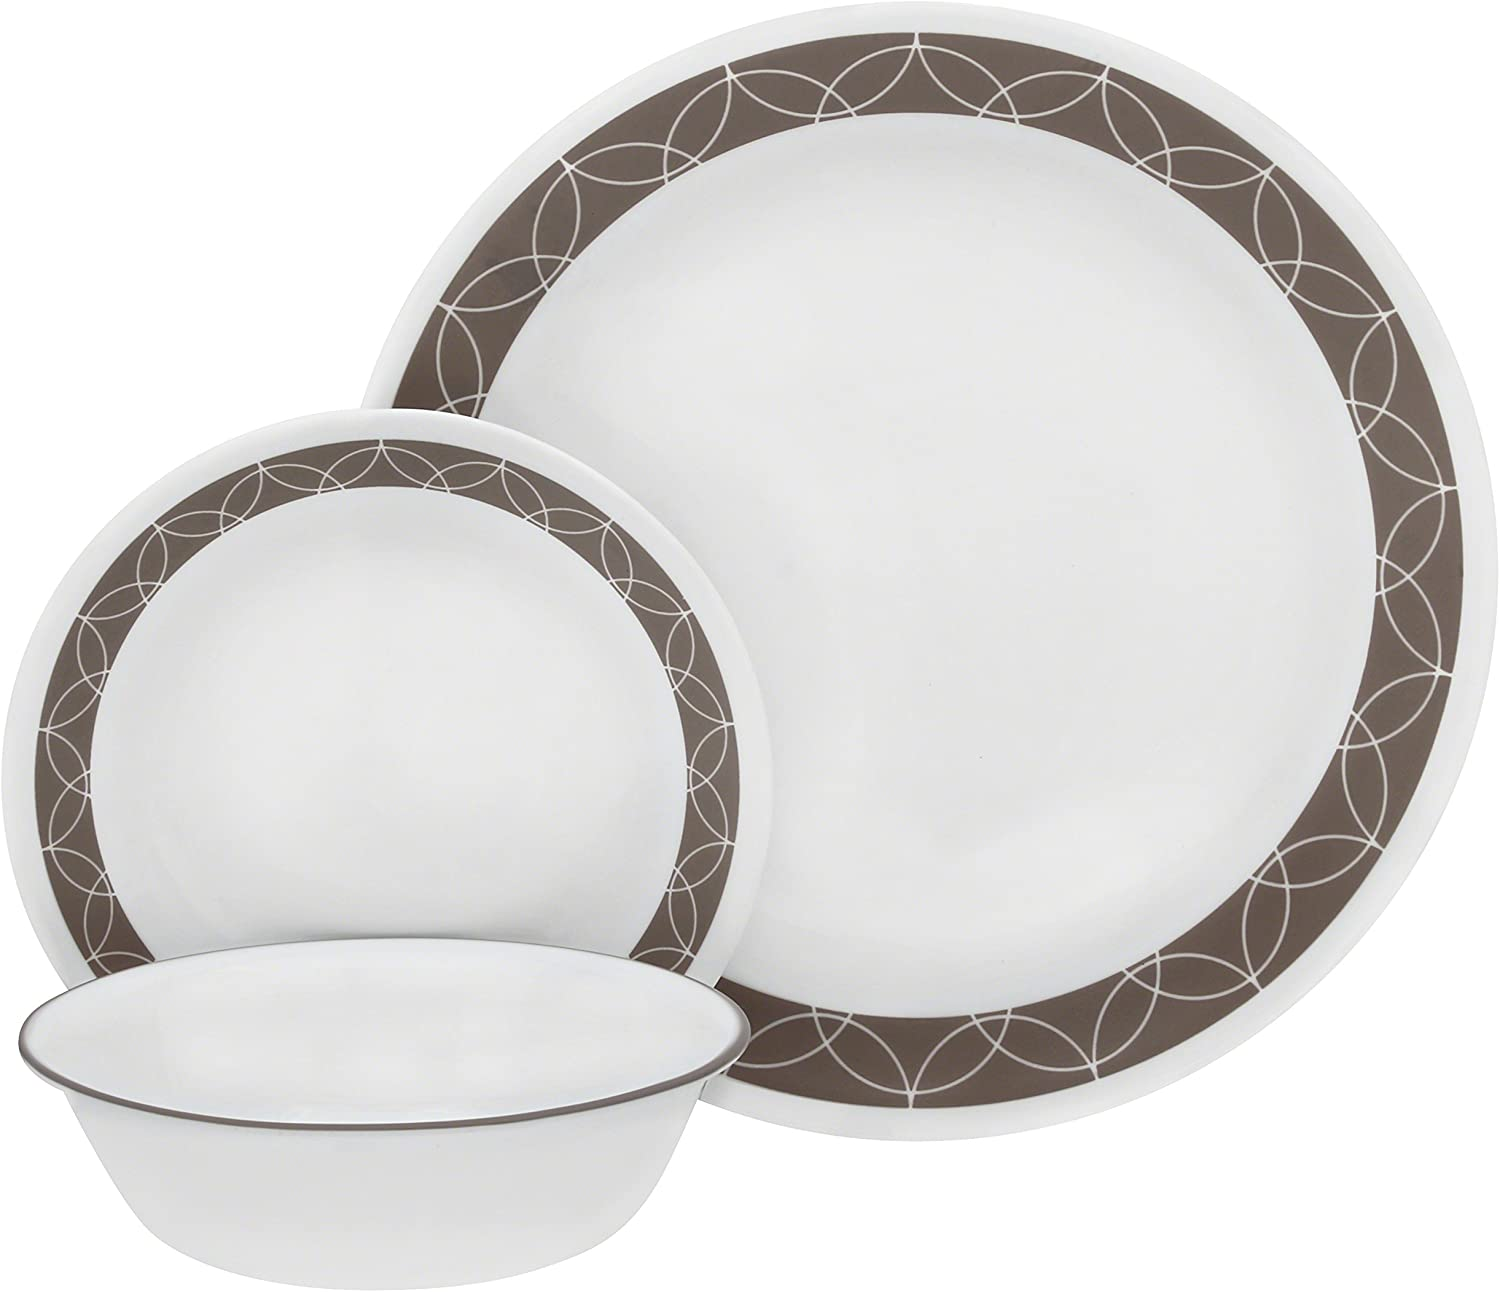 Corelle 1124368 Service for 6, Chip Resistant, Sand Sketch dinner plates, 18-piece